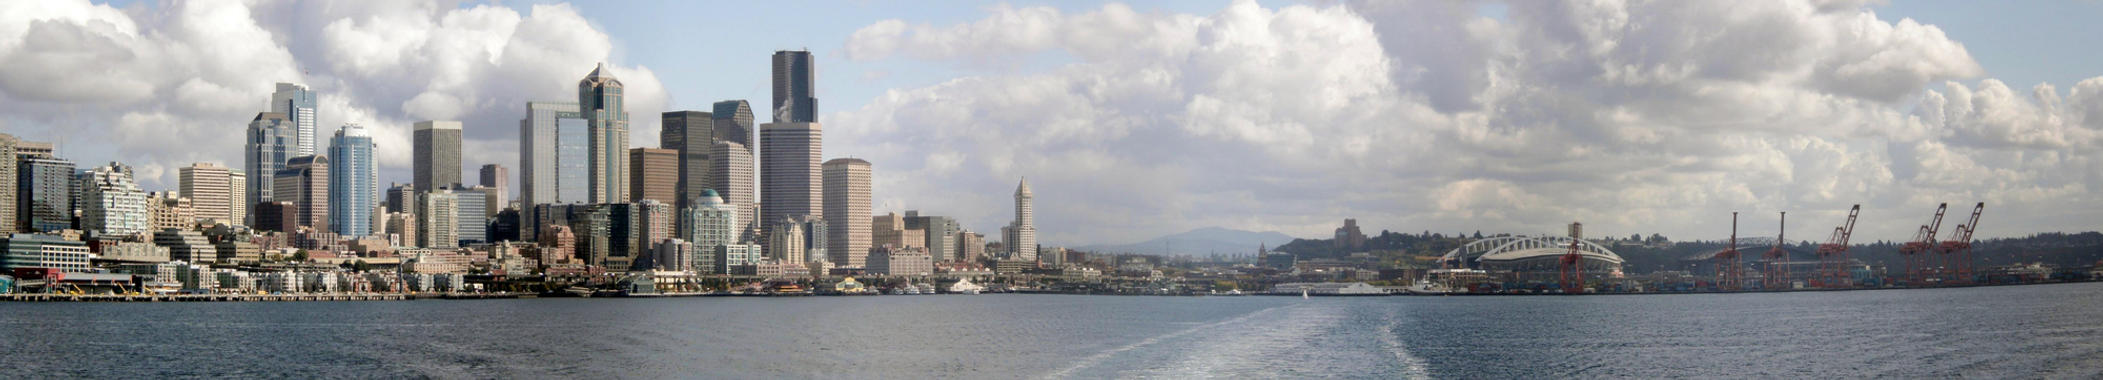 Seattle from Bainbridge Ferry by Mauser712